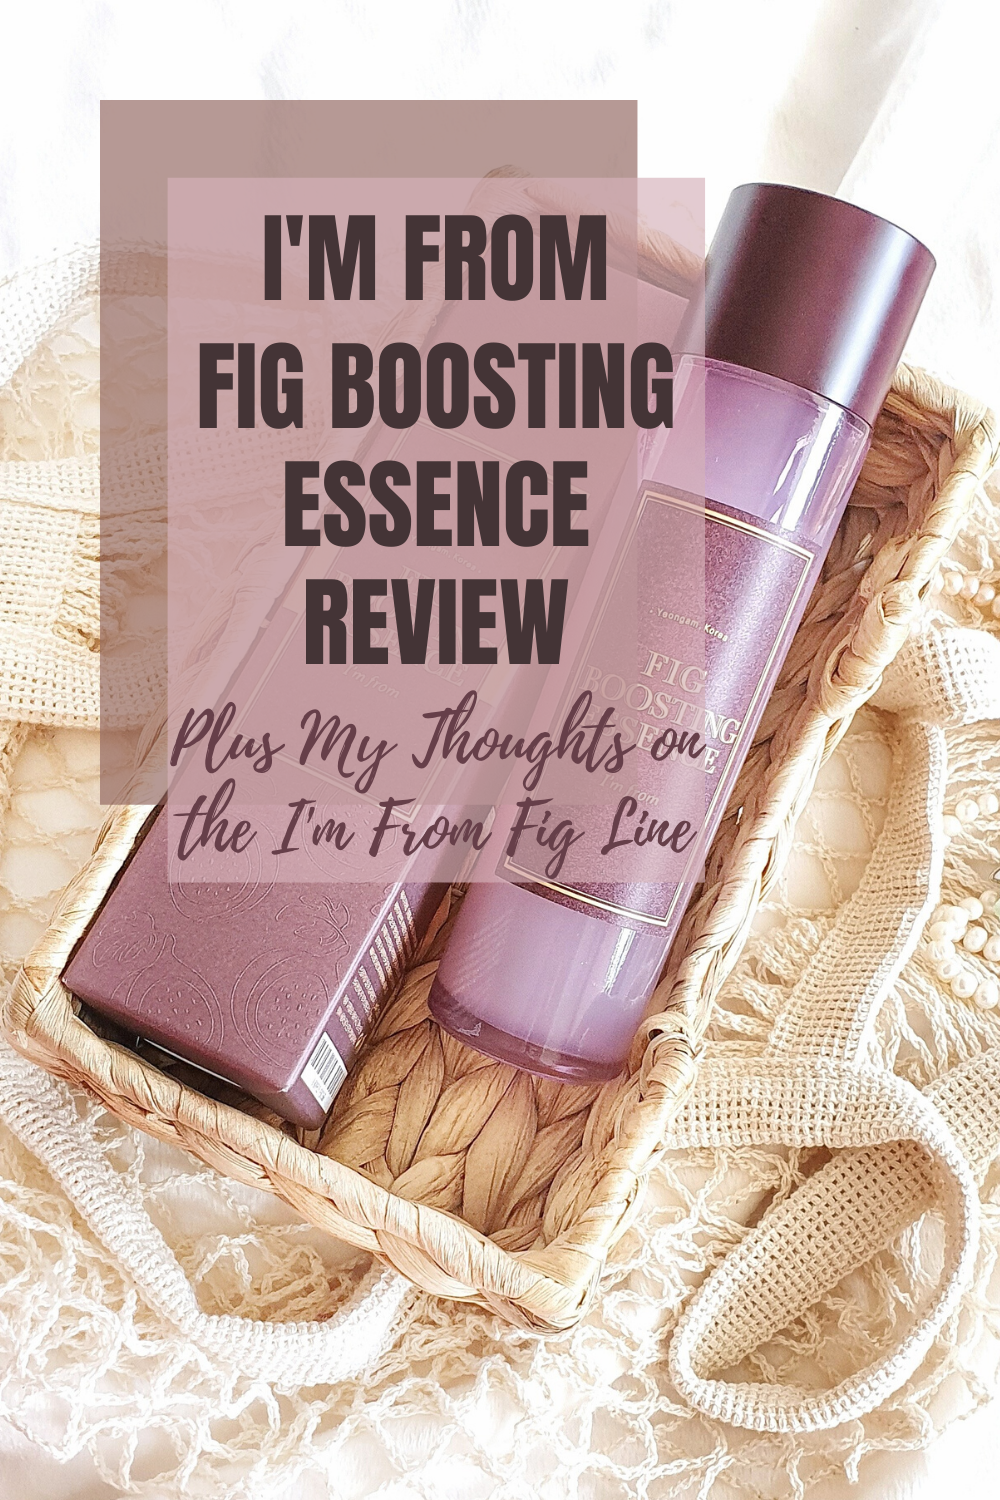 Im from Fig Boosting Essence Review My Thoughts on the Im from Fig Line